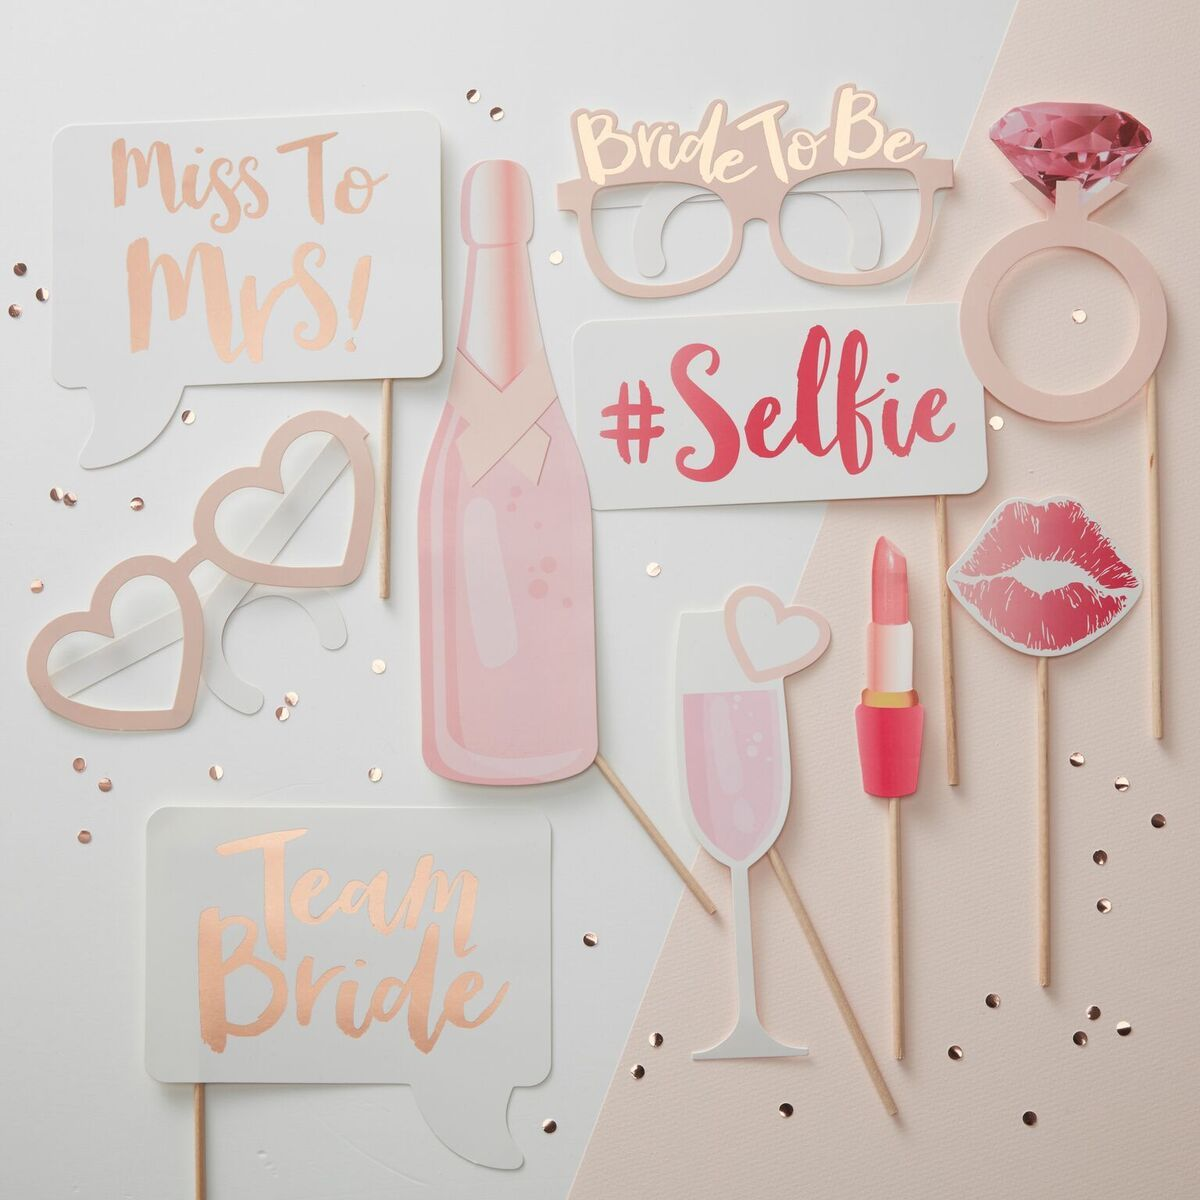 These Cly Hen Party Props Are A Gorgeous Way To Capture Stylish Fun Photos On The Do Celebrations Sophisticated Selection Of Pink And Gold